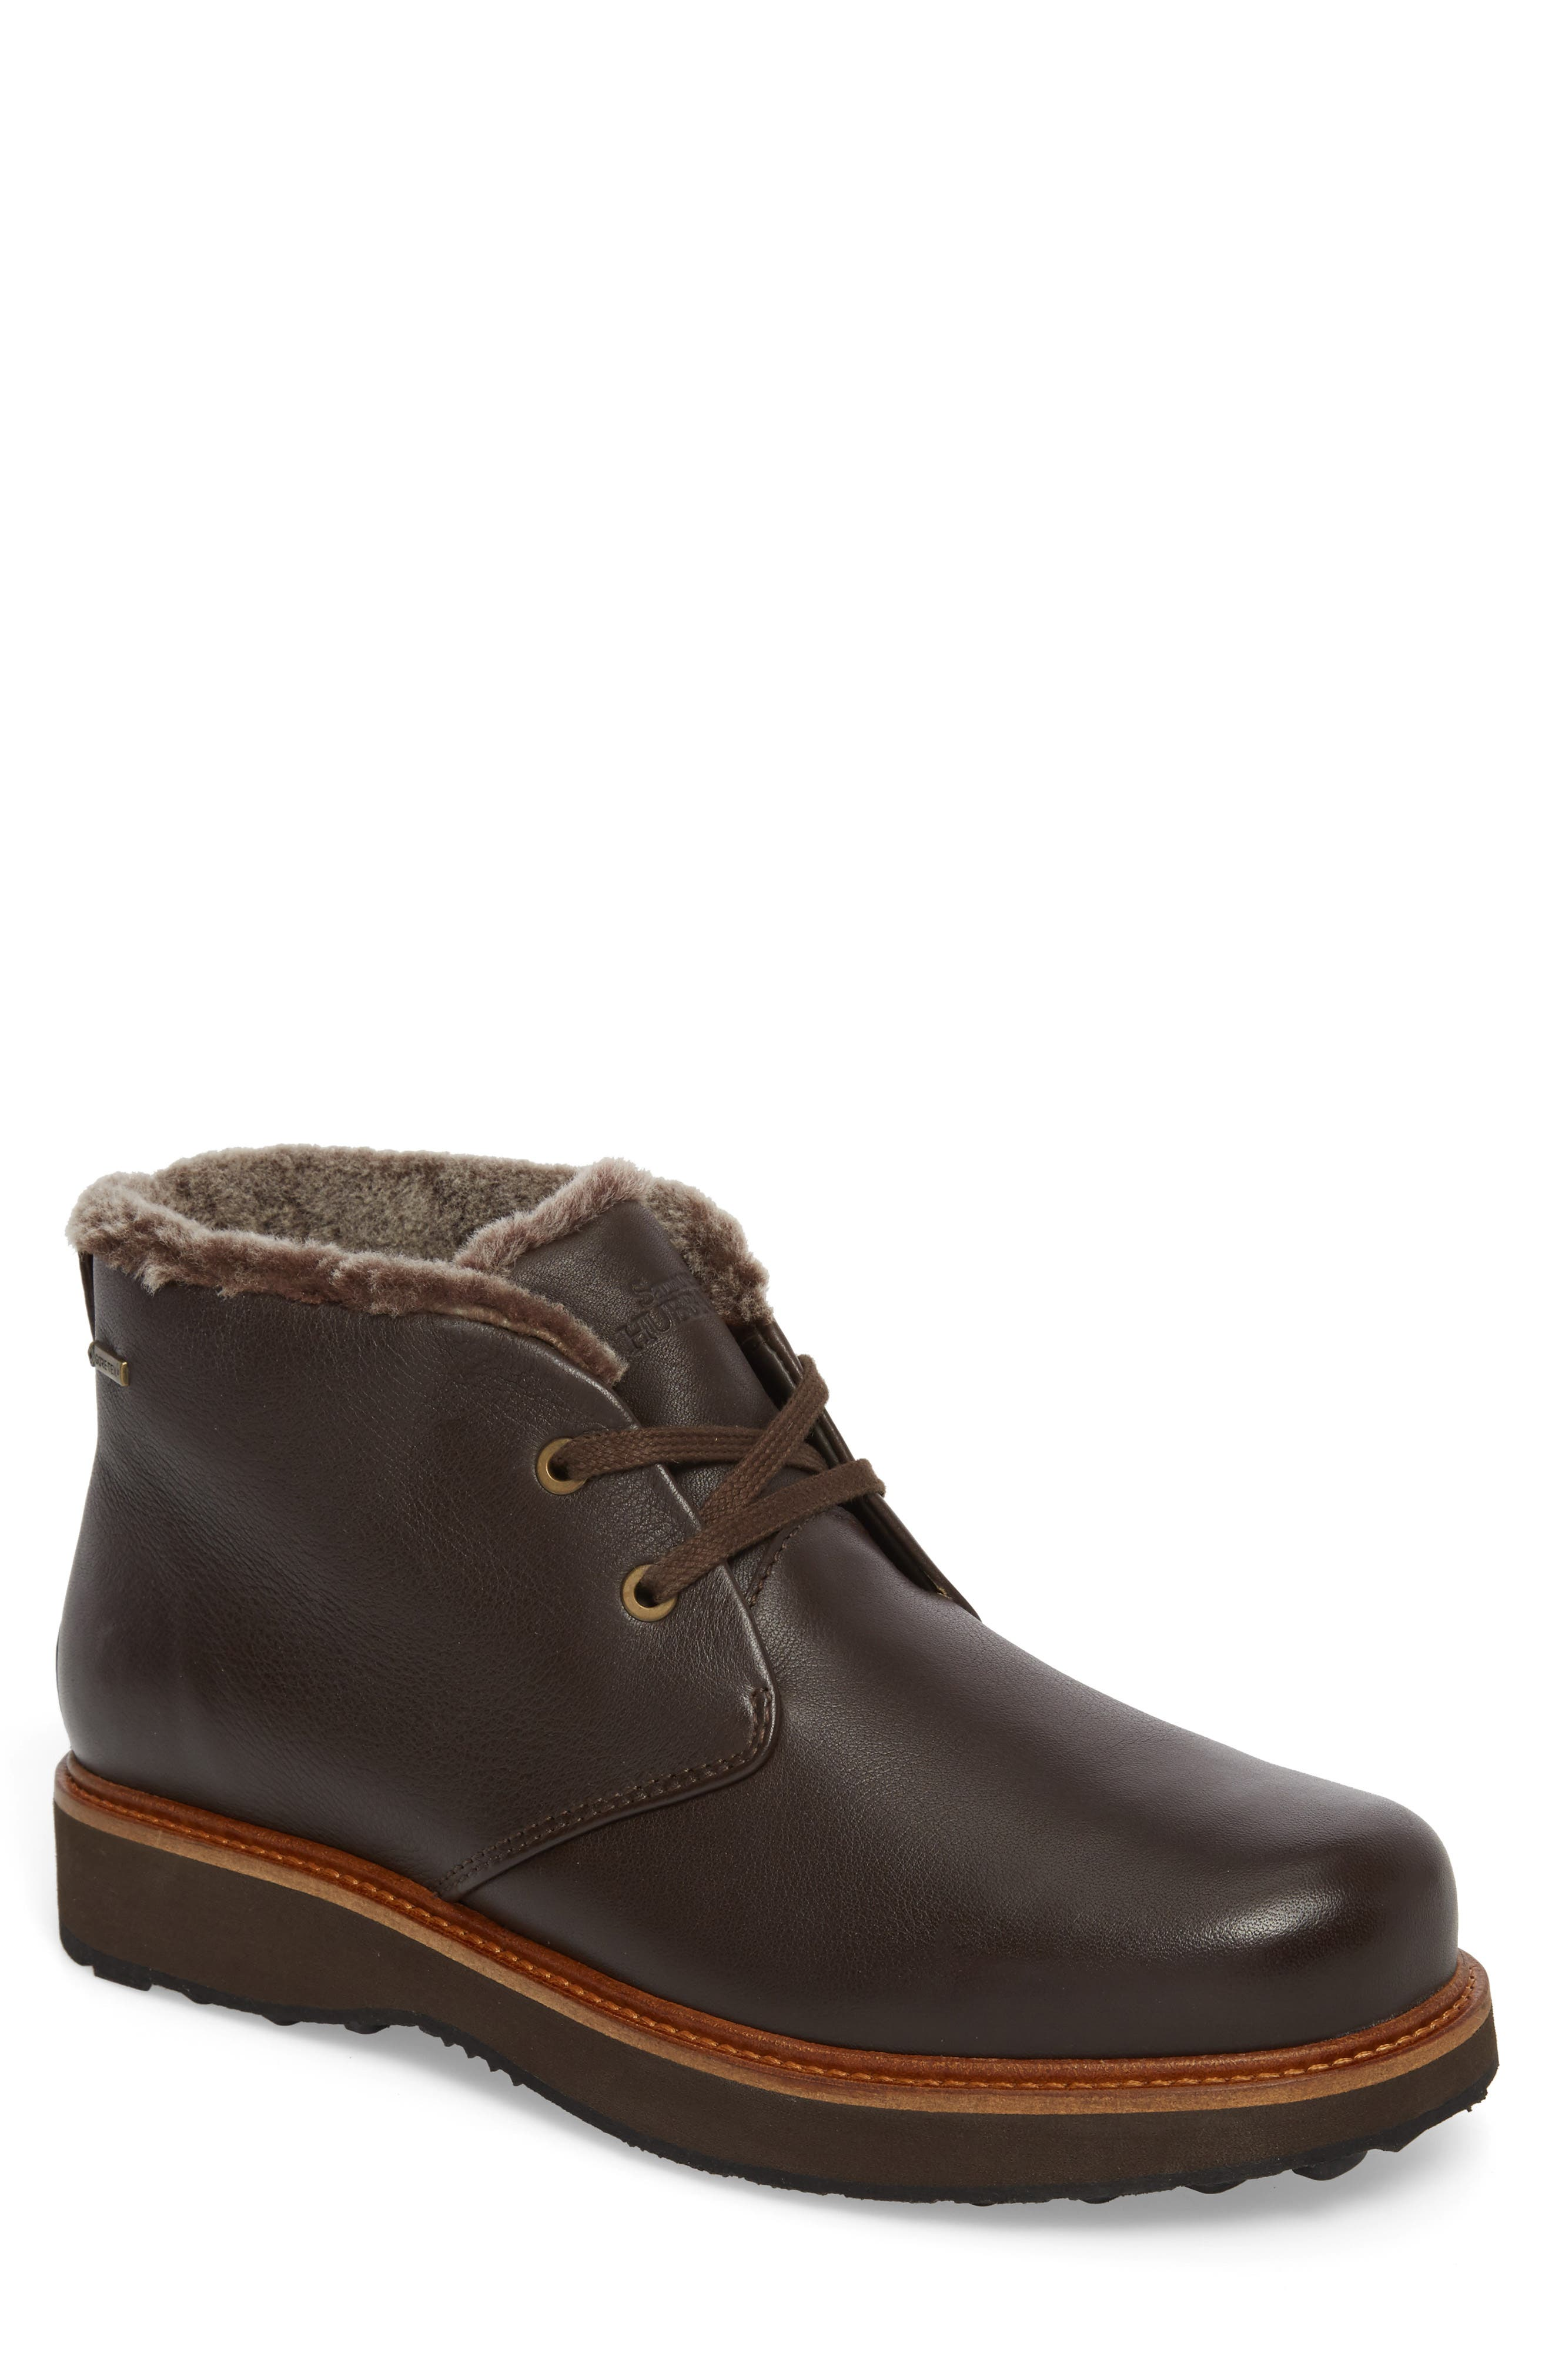 Winter's Day Waterproof Gore-Tex<sup>®</sup> Genuine Shearling Lined Chukka Boot,                         Main,                         color, Espresso Brown Leather